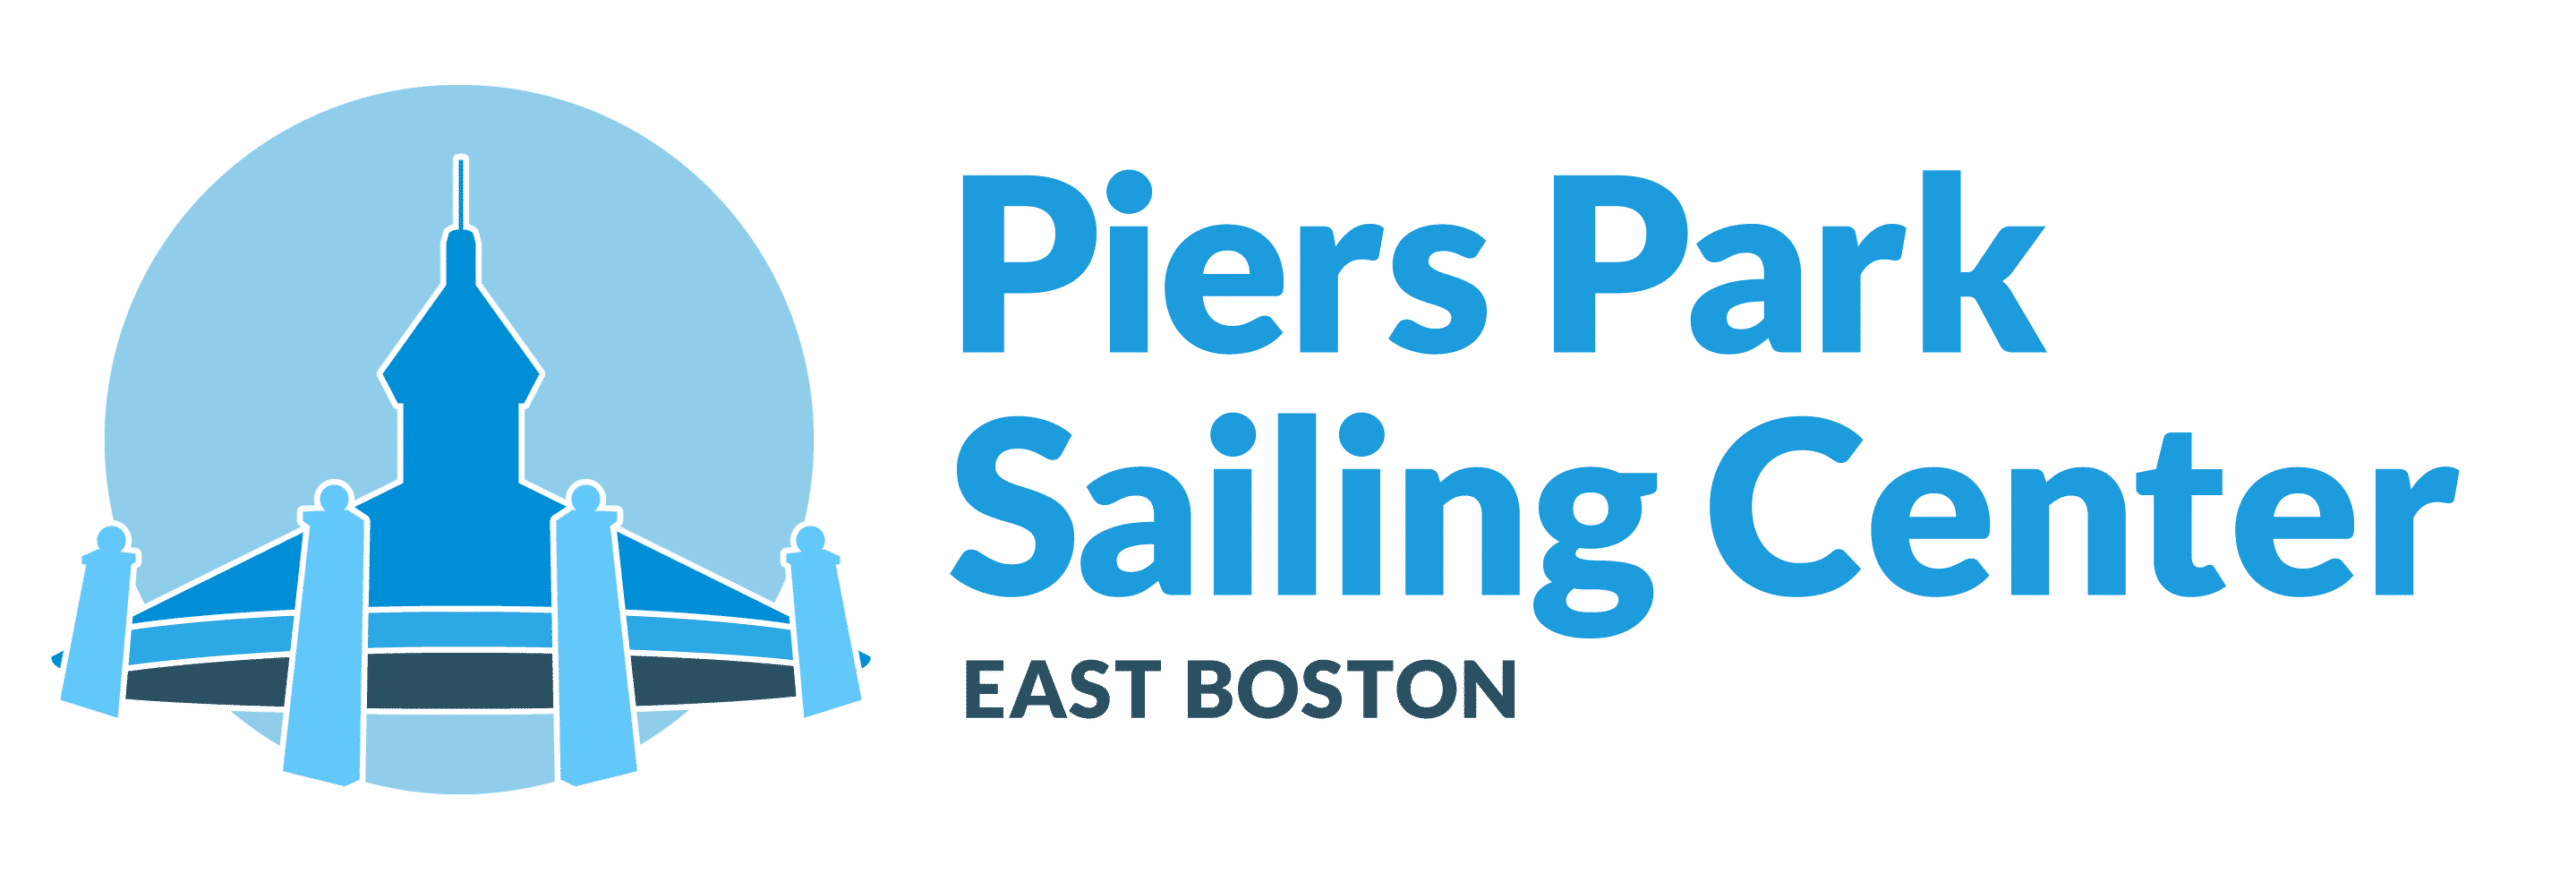 Piers Park Sailing Center C, I